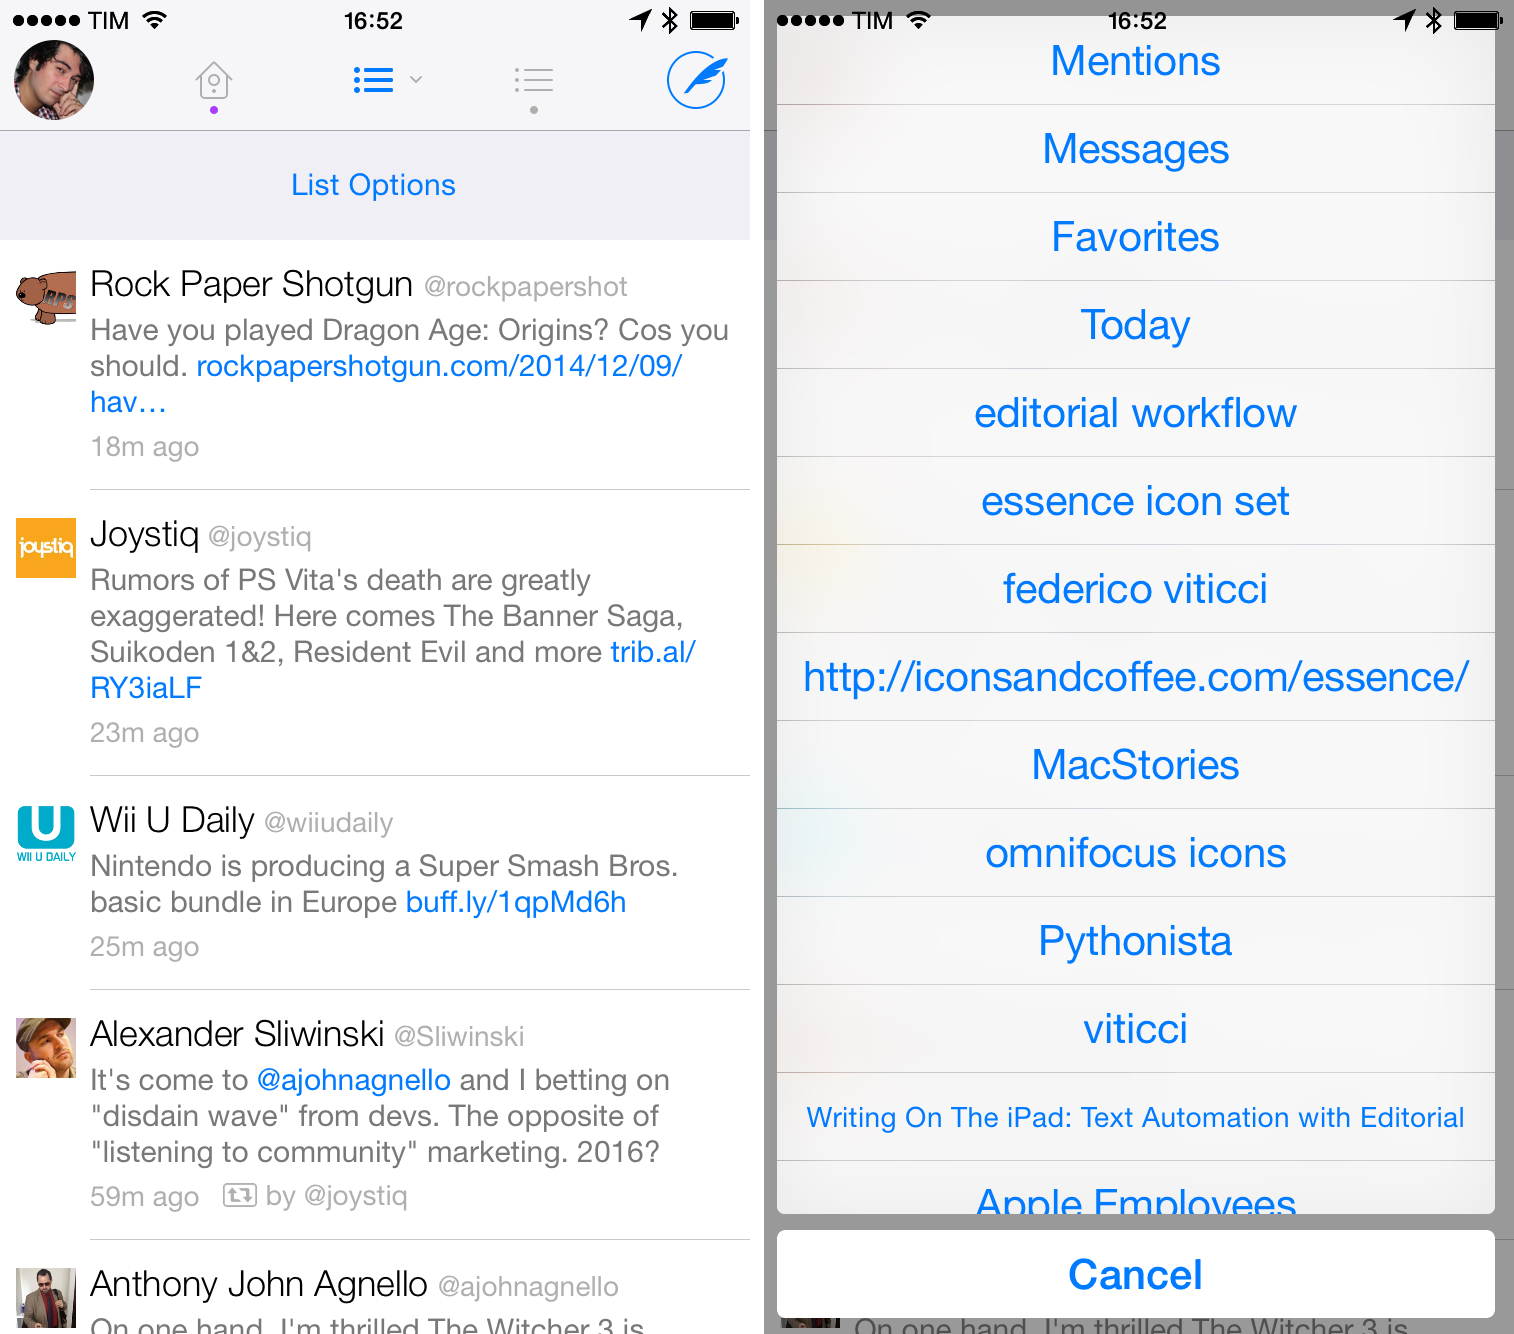 Twitterrific has good support for lists, but it often sacrifices clarity for unified timeline consistency.